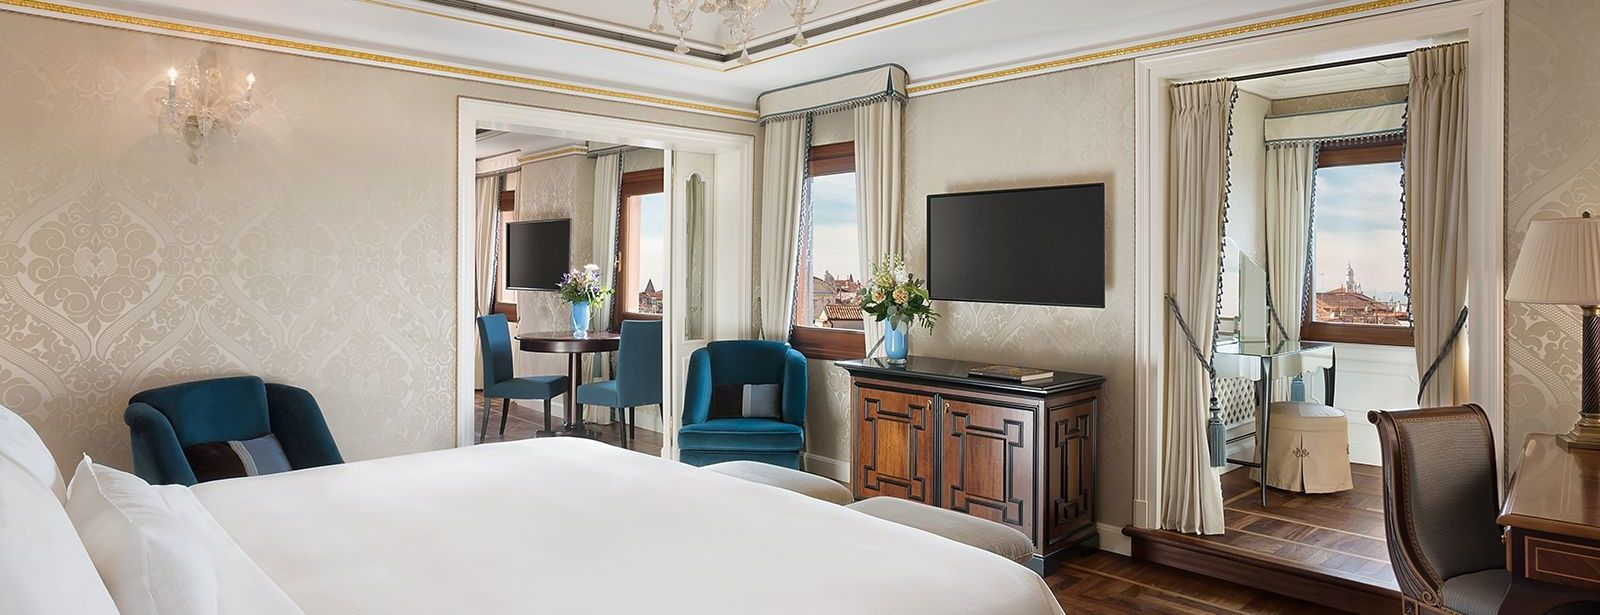 Bedroom of the Deluxe Terrace Suite at The Westin Europa & Regina, Venice